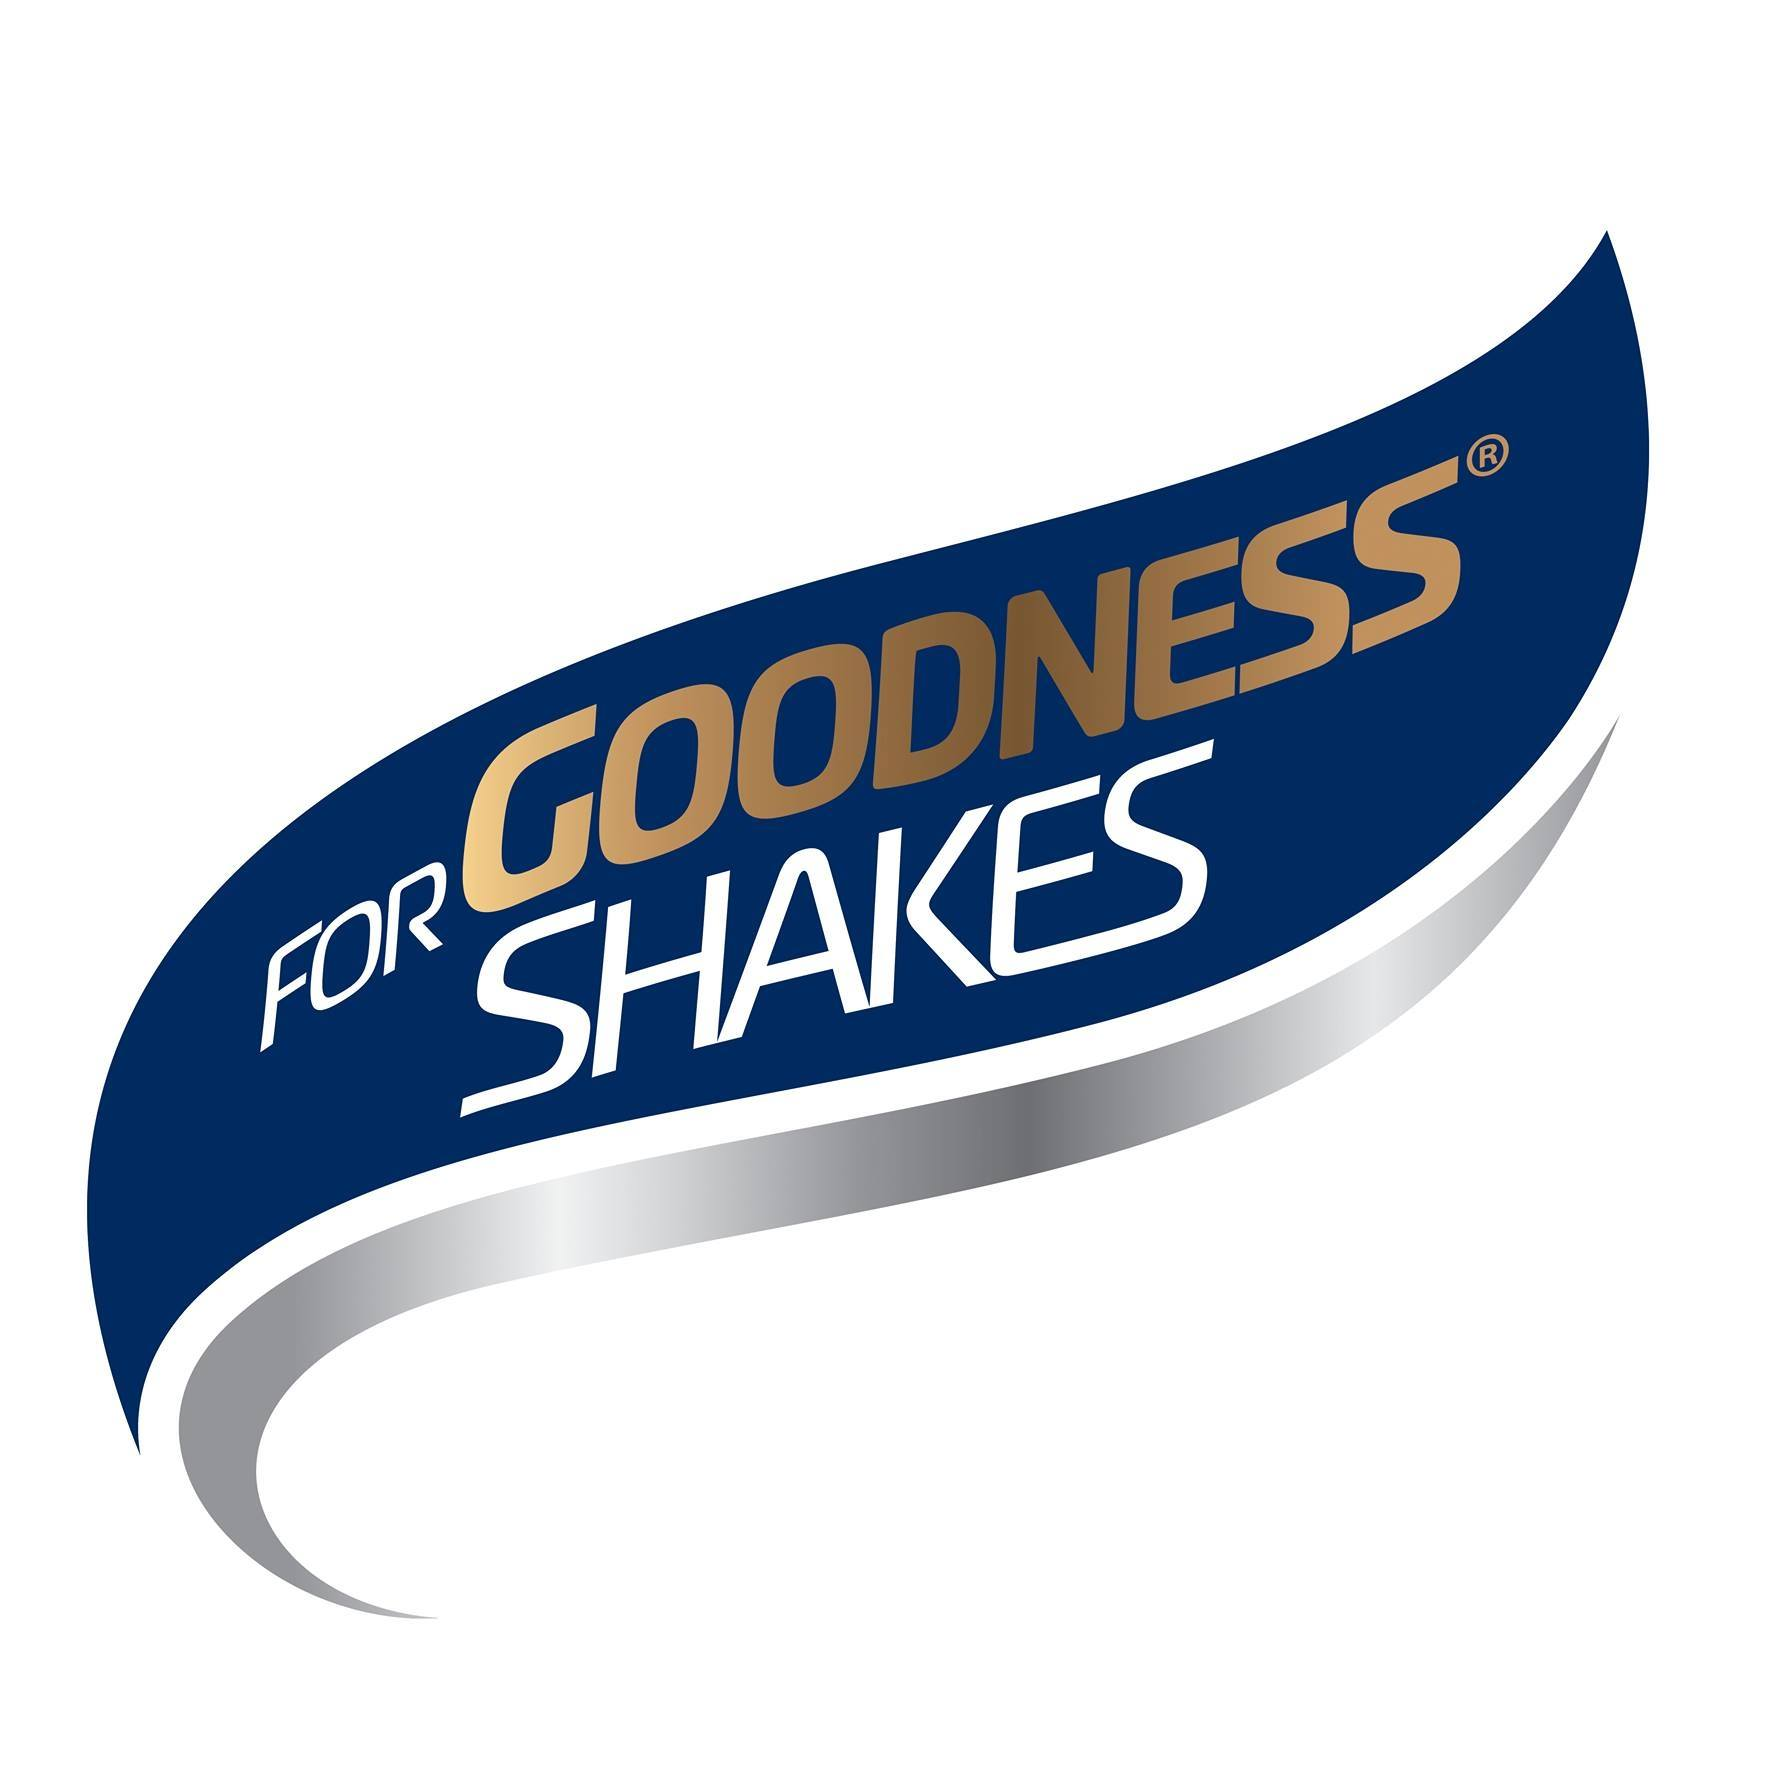 For Goodness Shakes Outlet